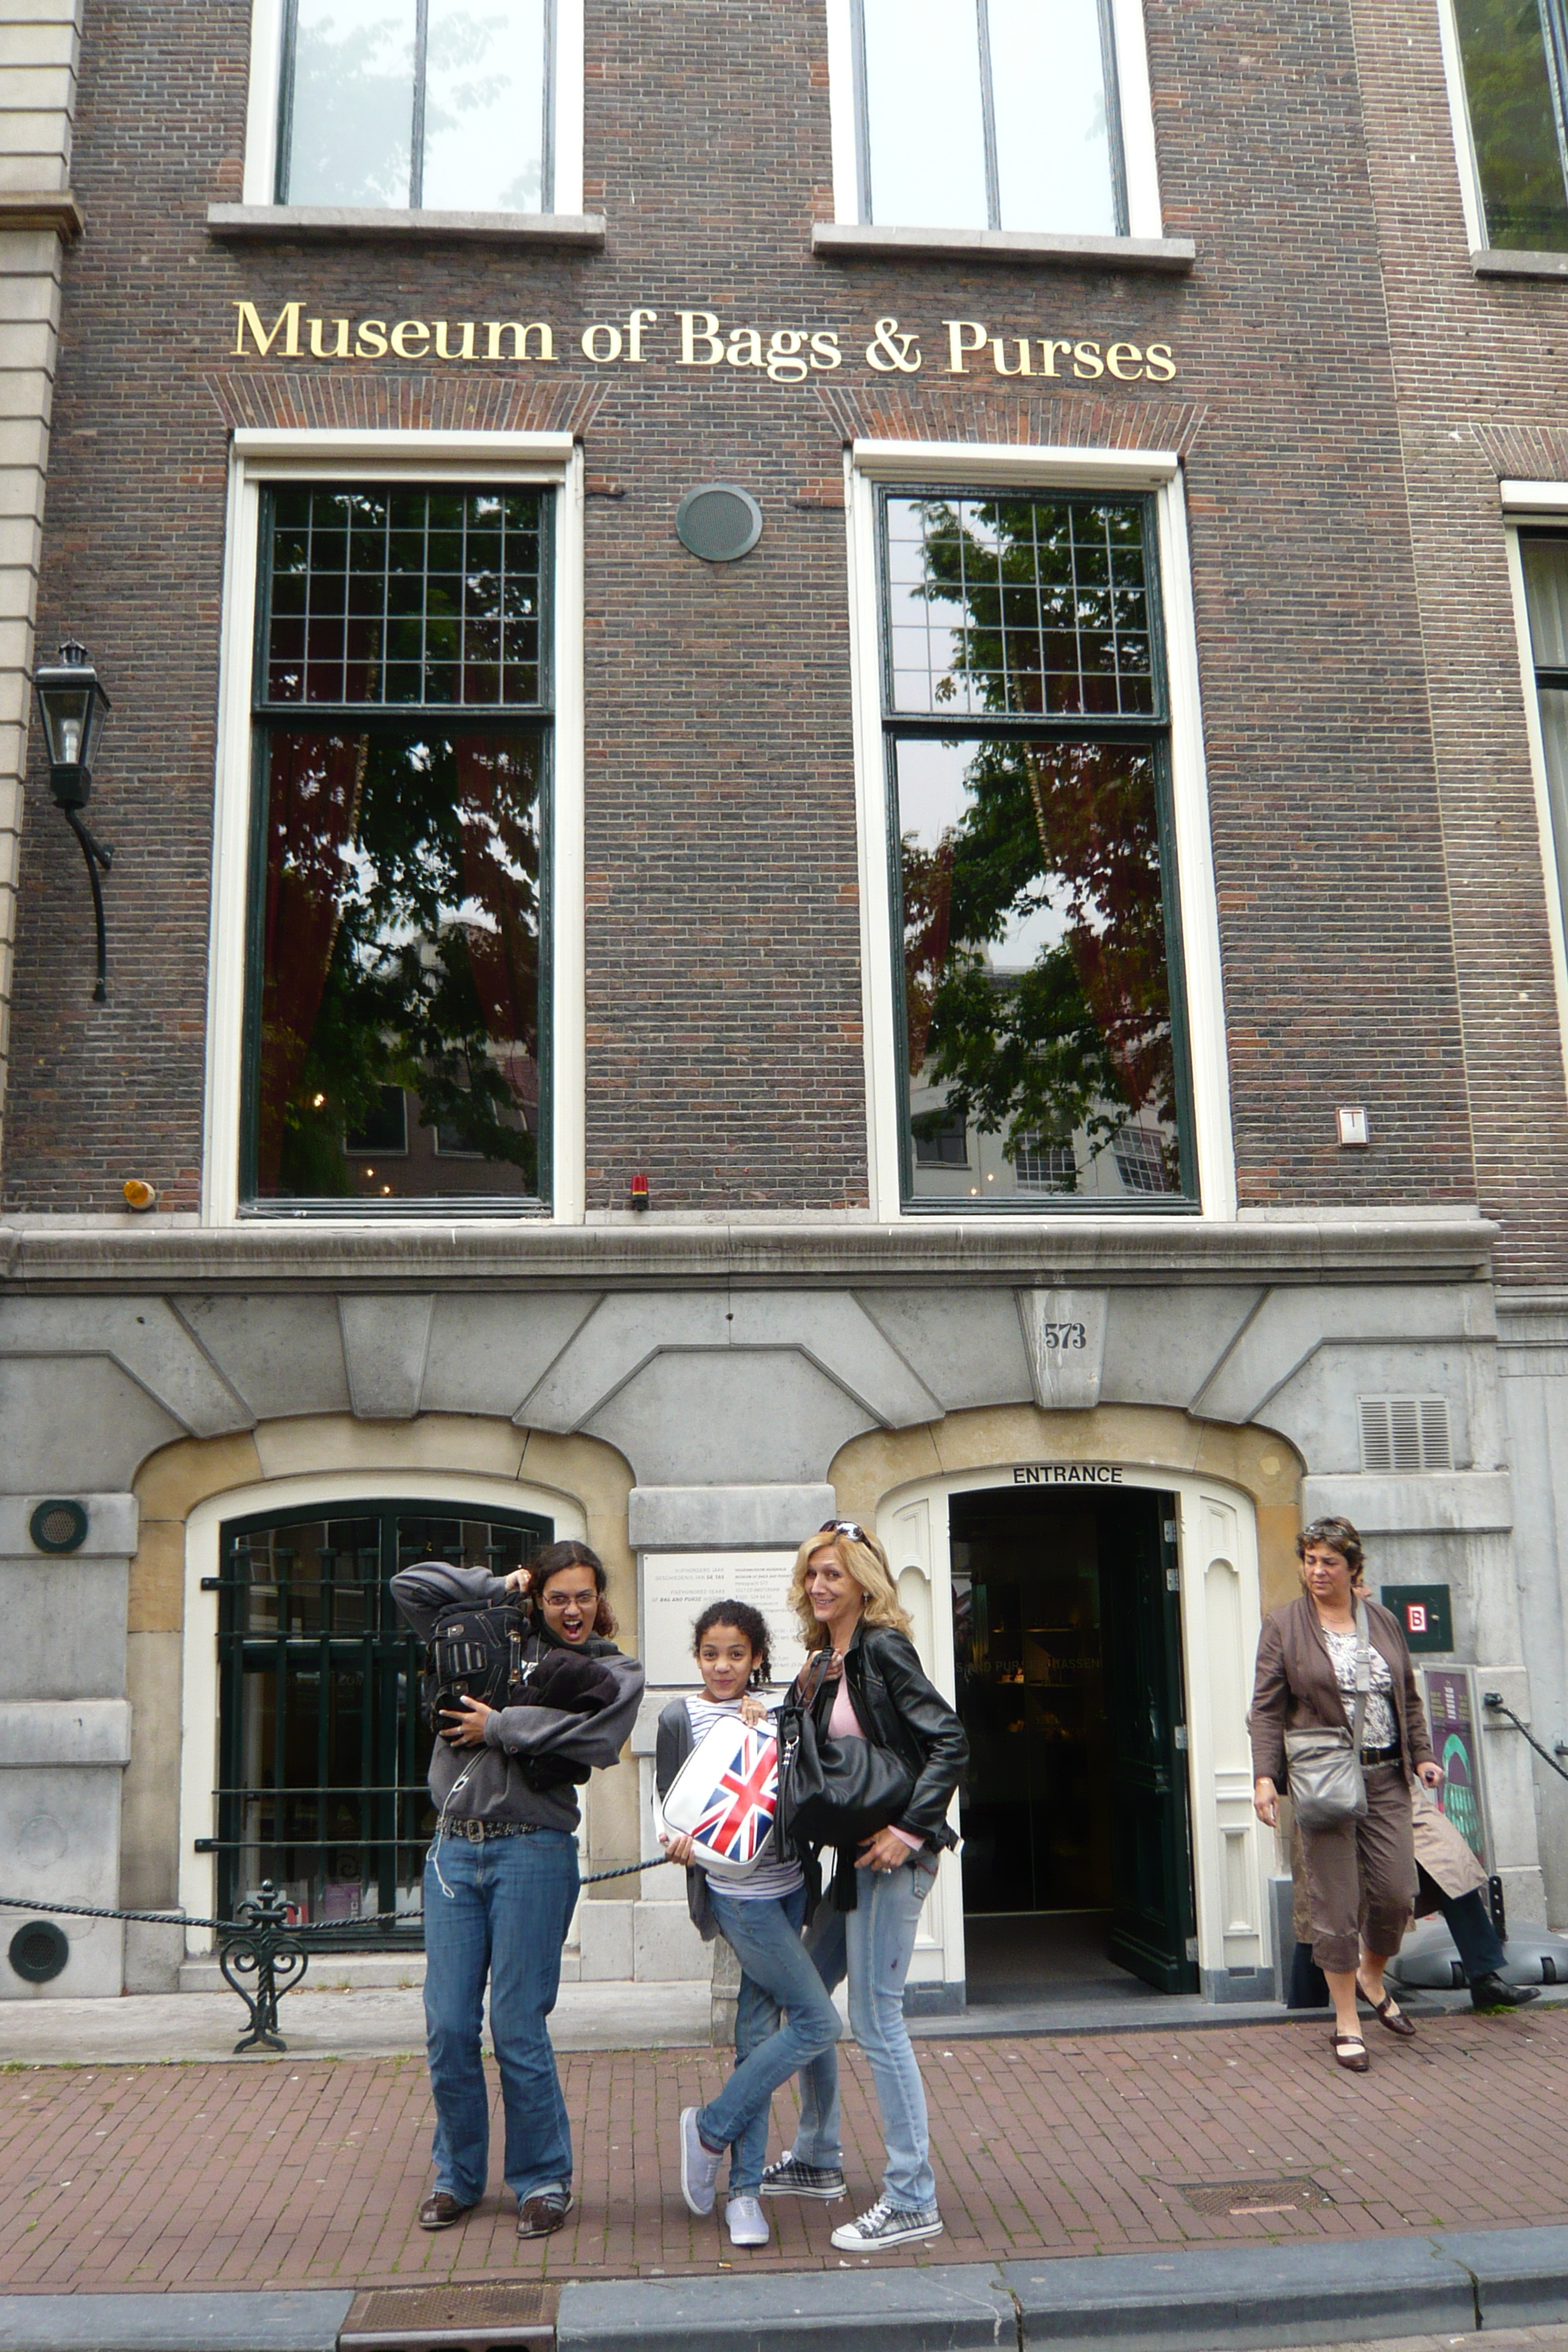 File:Amsterdam-Museum of bags and purses.jpg